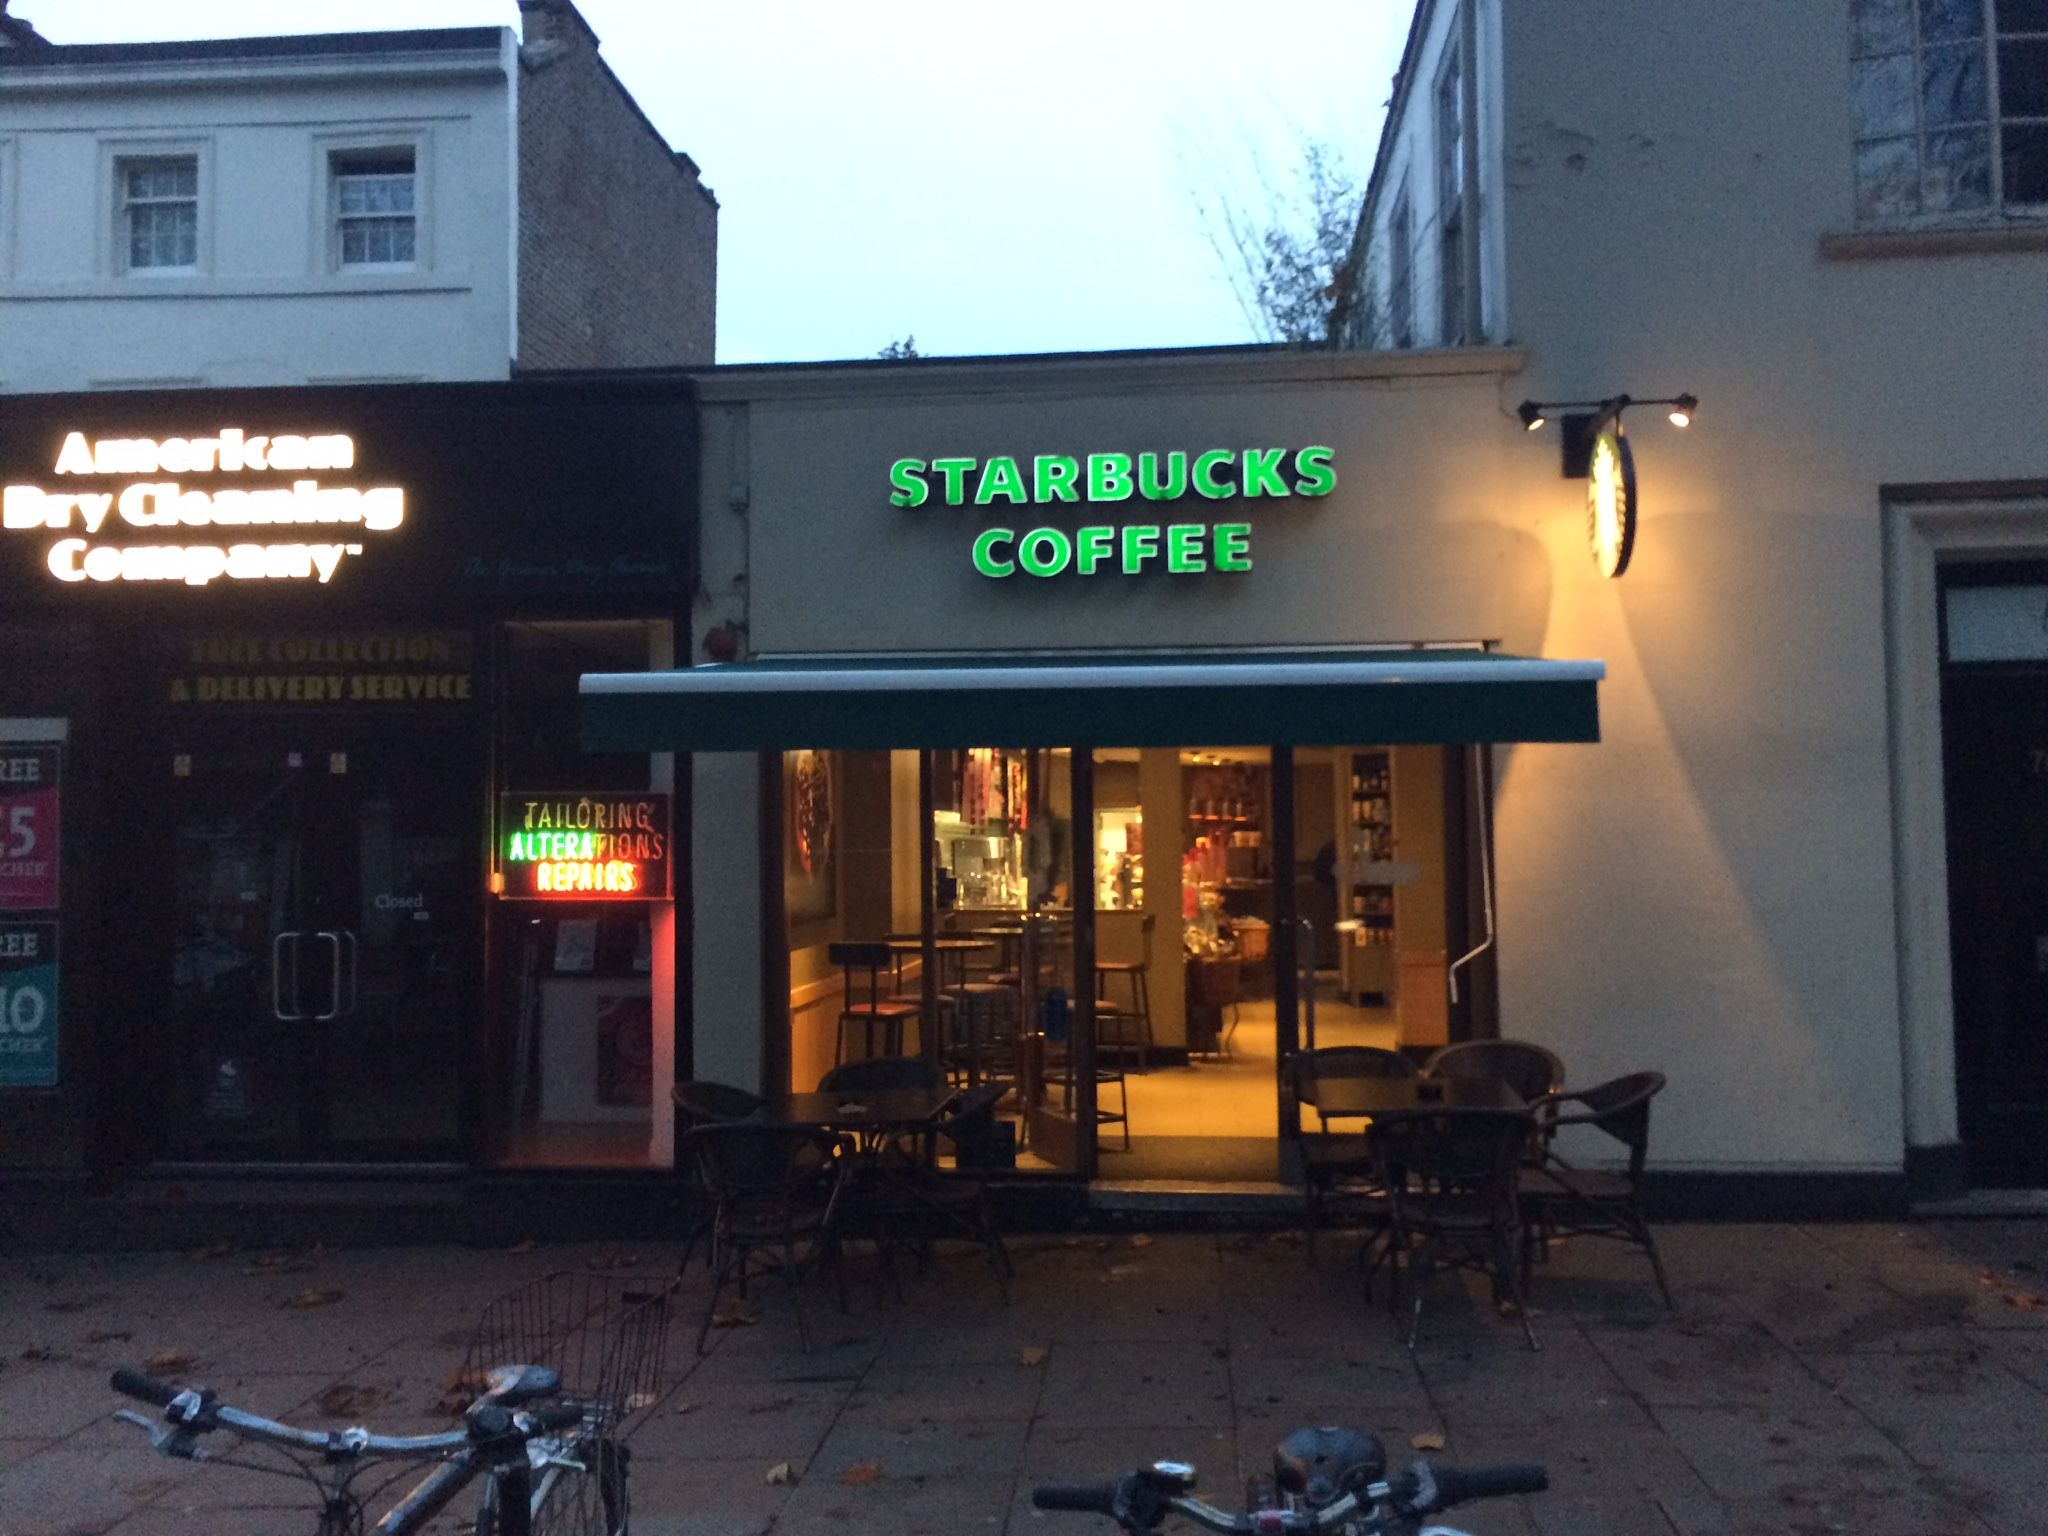 Starbucks Looking After Their Customers With A New External Awning By Deans Blinds Awnings Blinds Commercial Property Installation